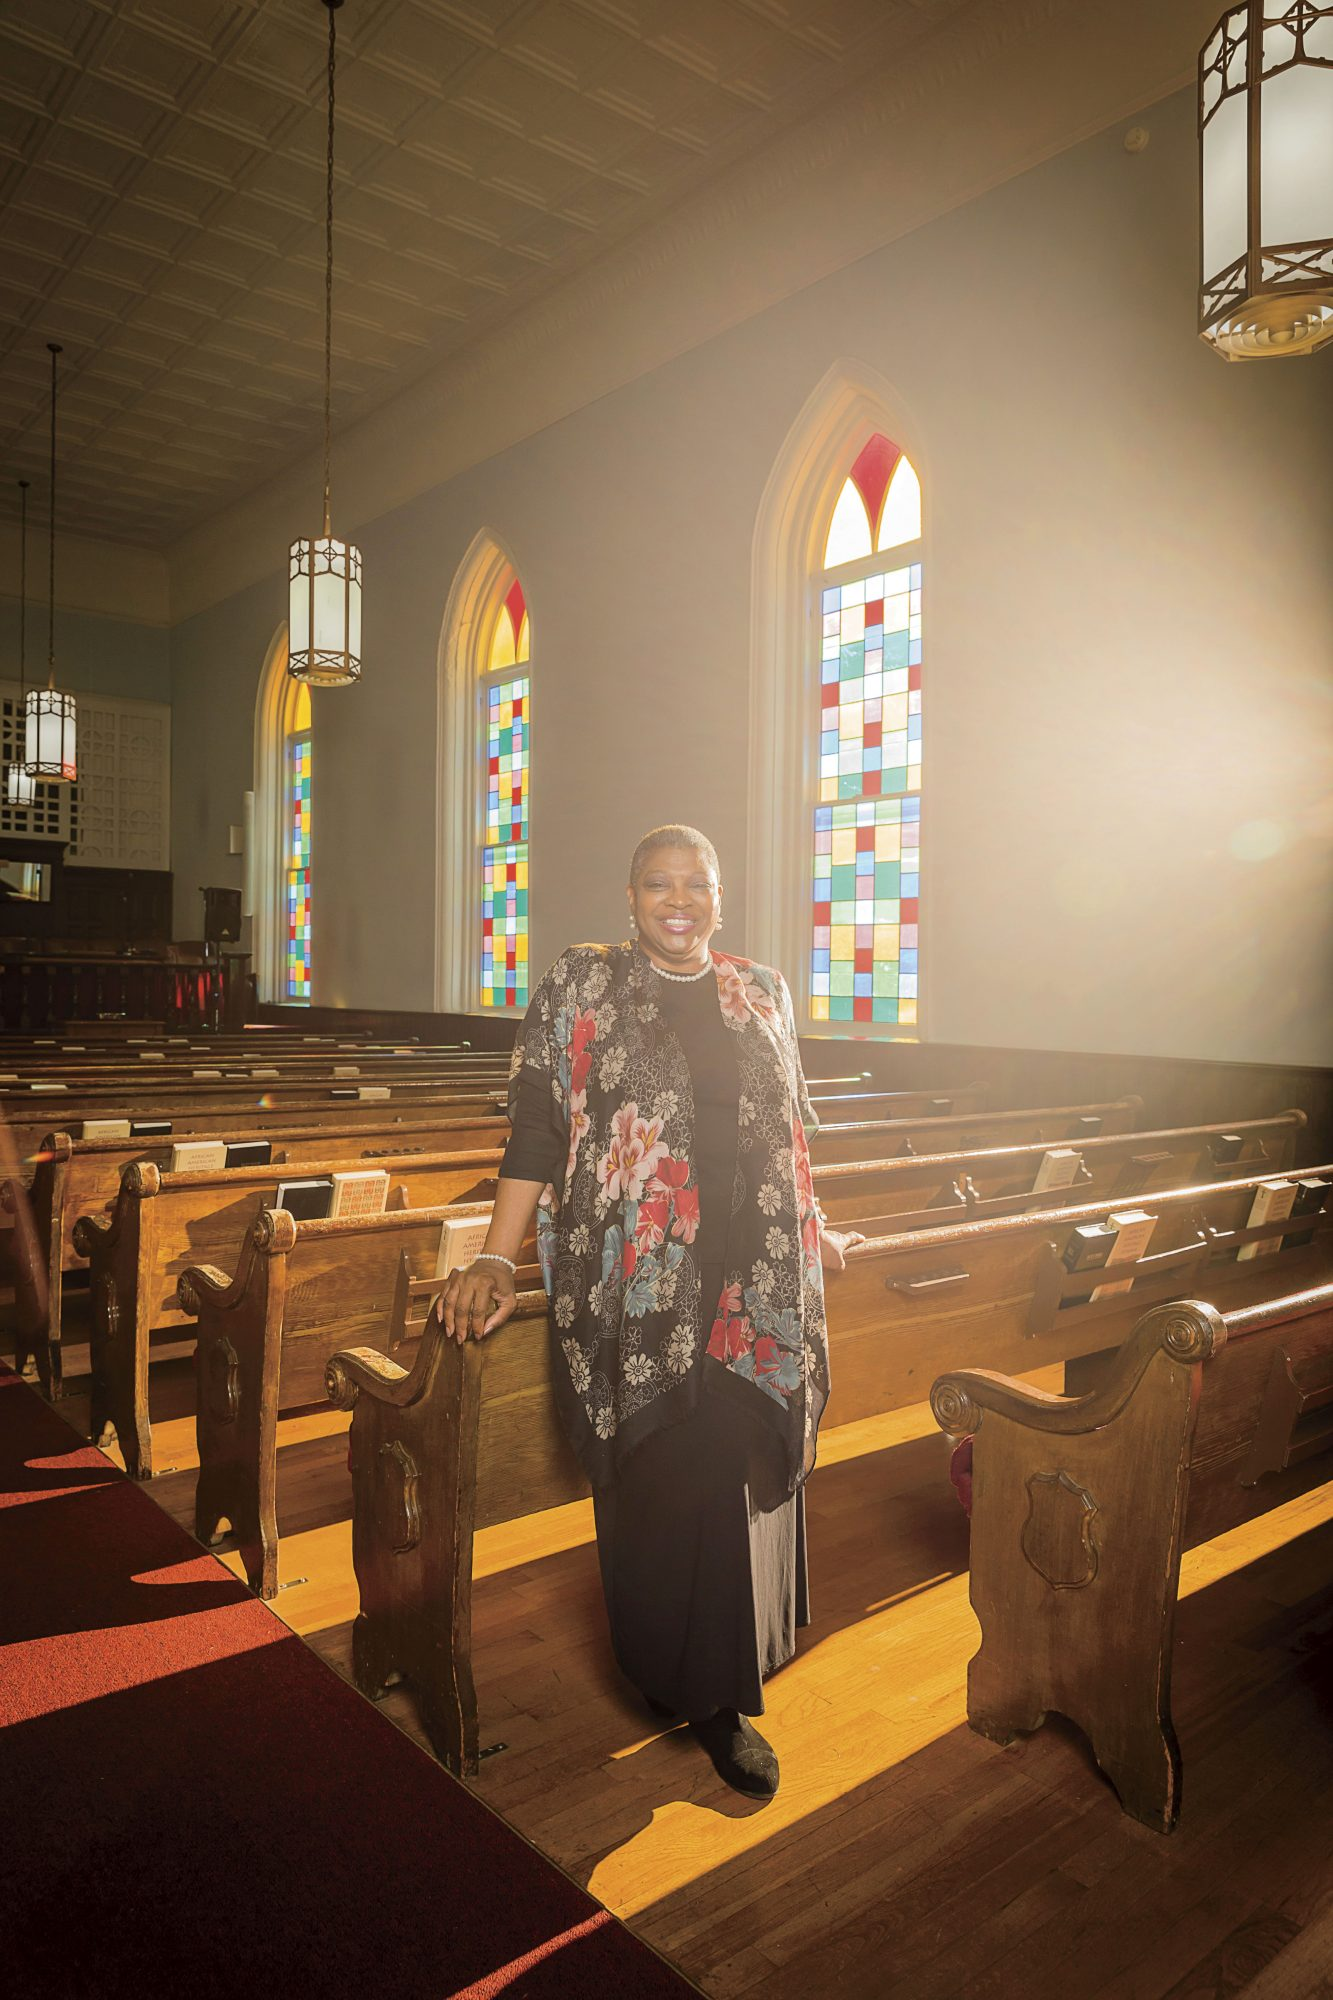 Wanda Battle, Tour Ministry Director at The Dexter Avenue King Memorial Baptist Church